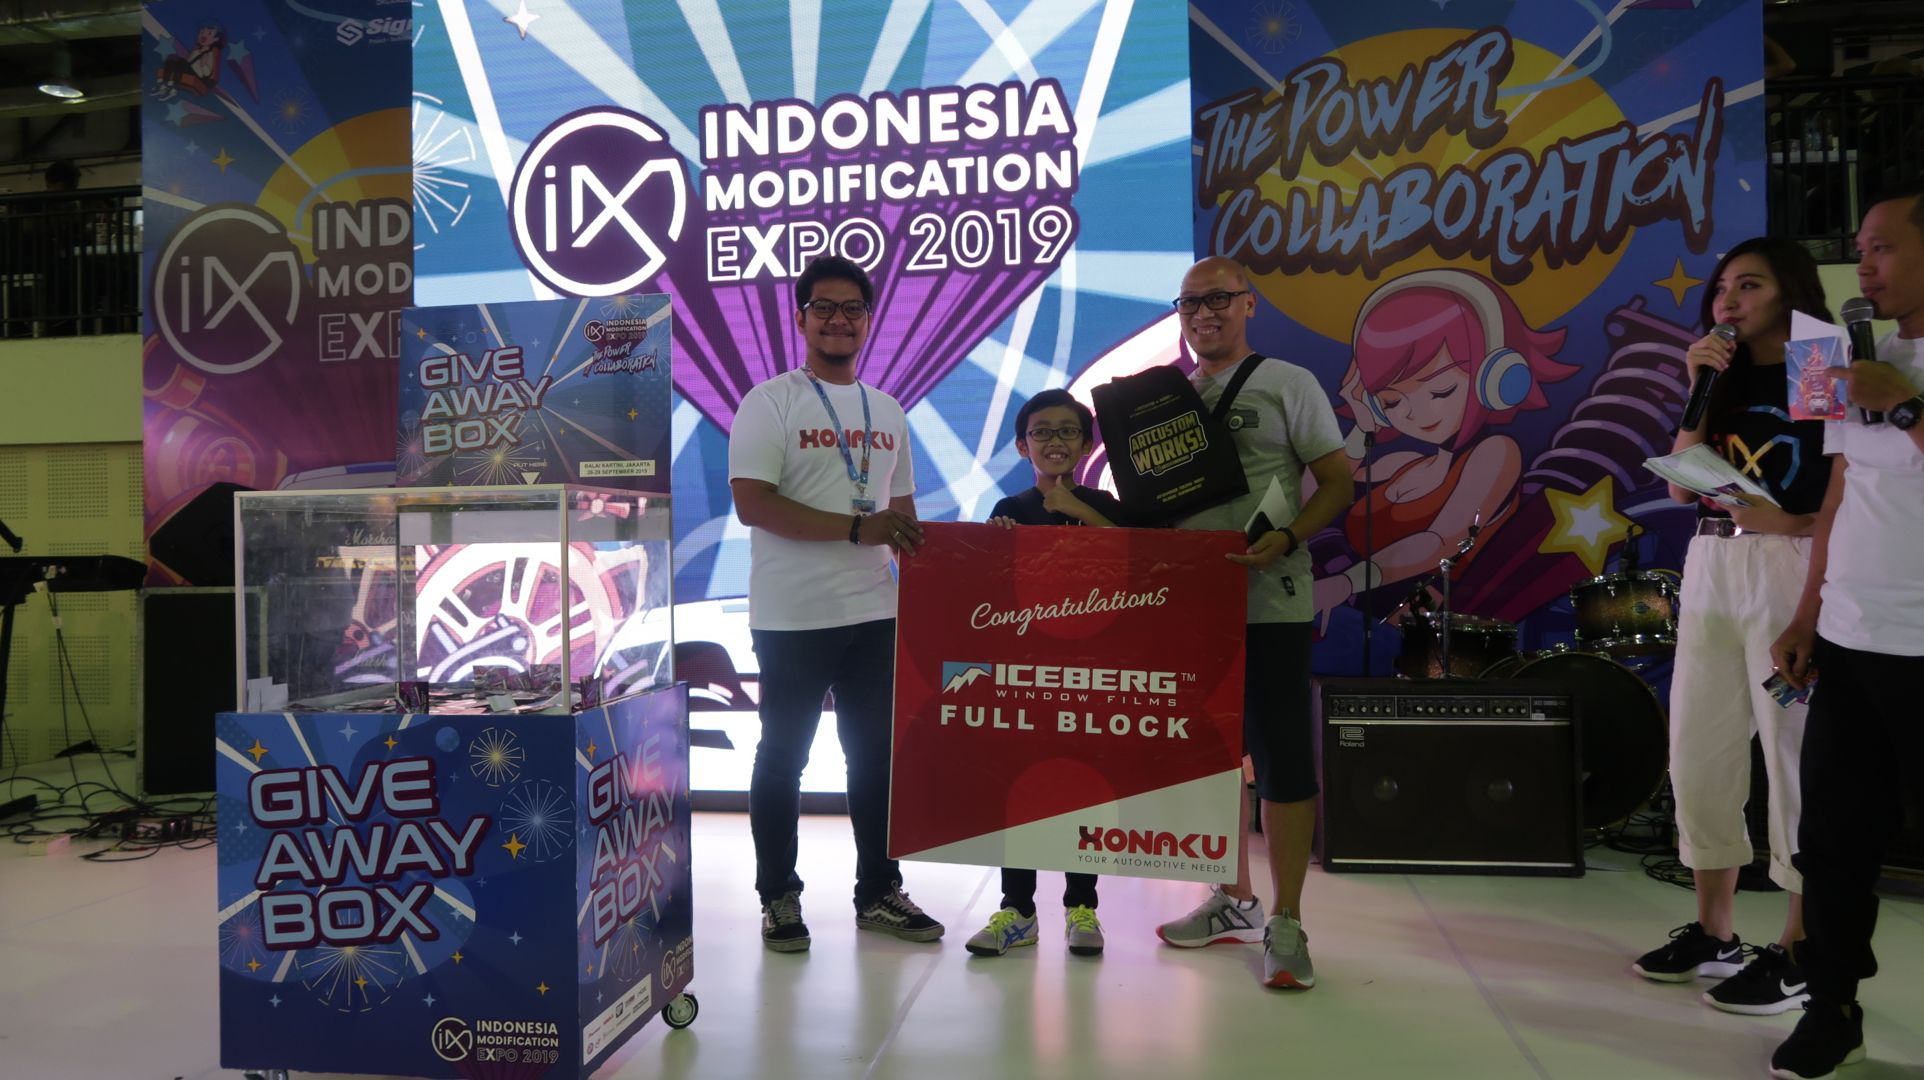 Imx - Indonesia modification expo giveaway 2019 (19)